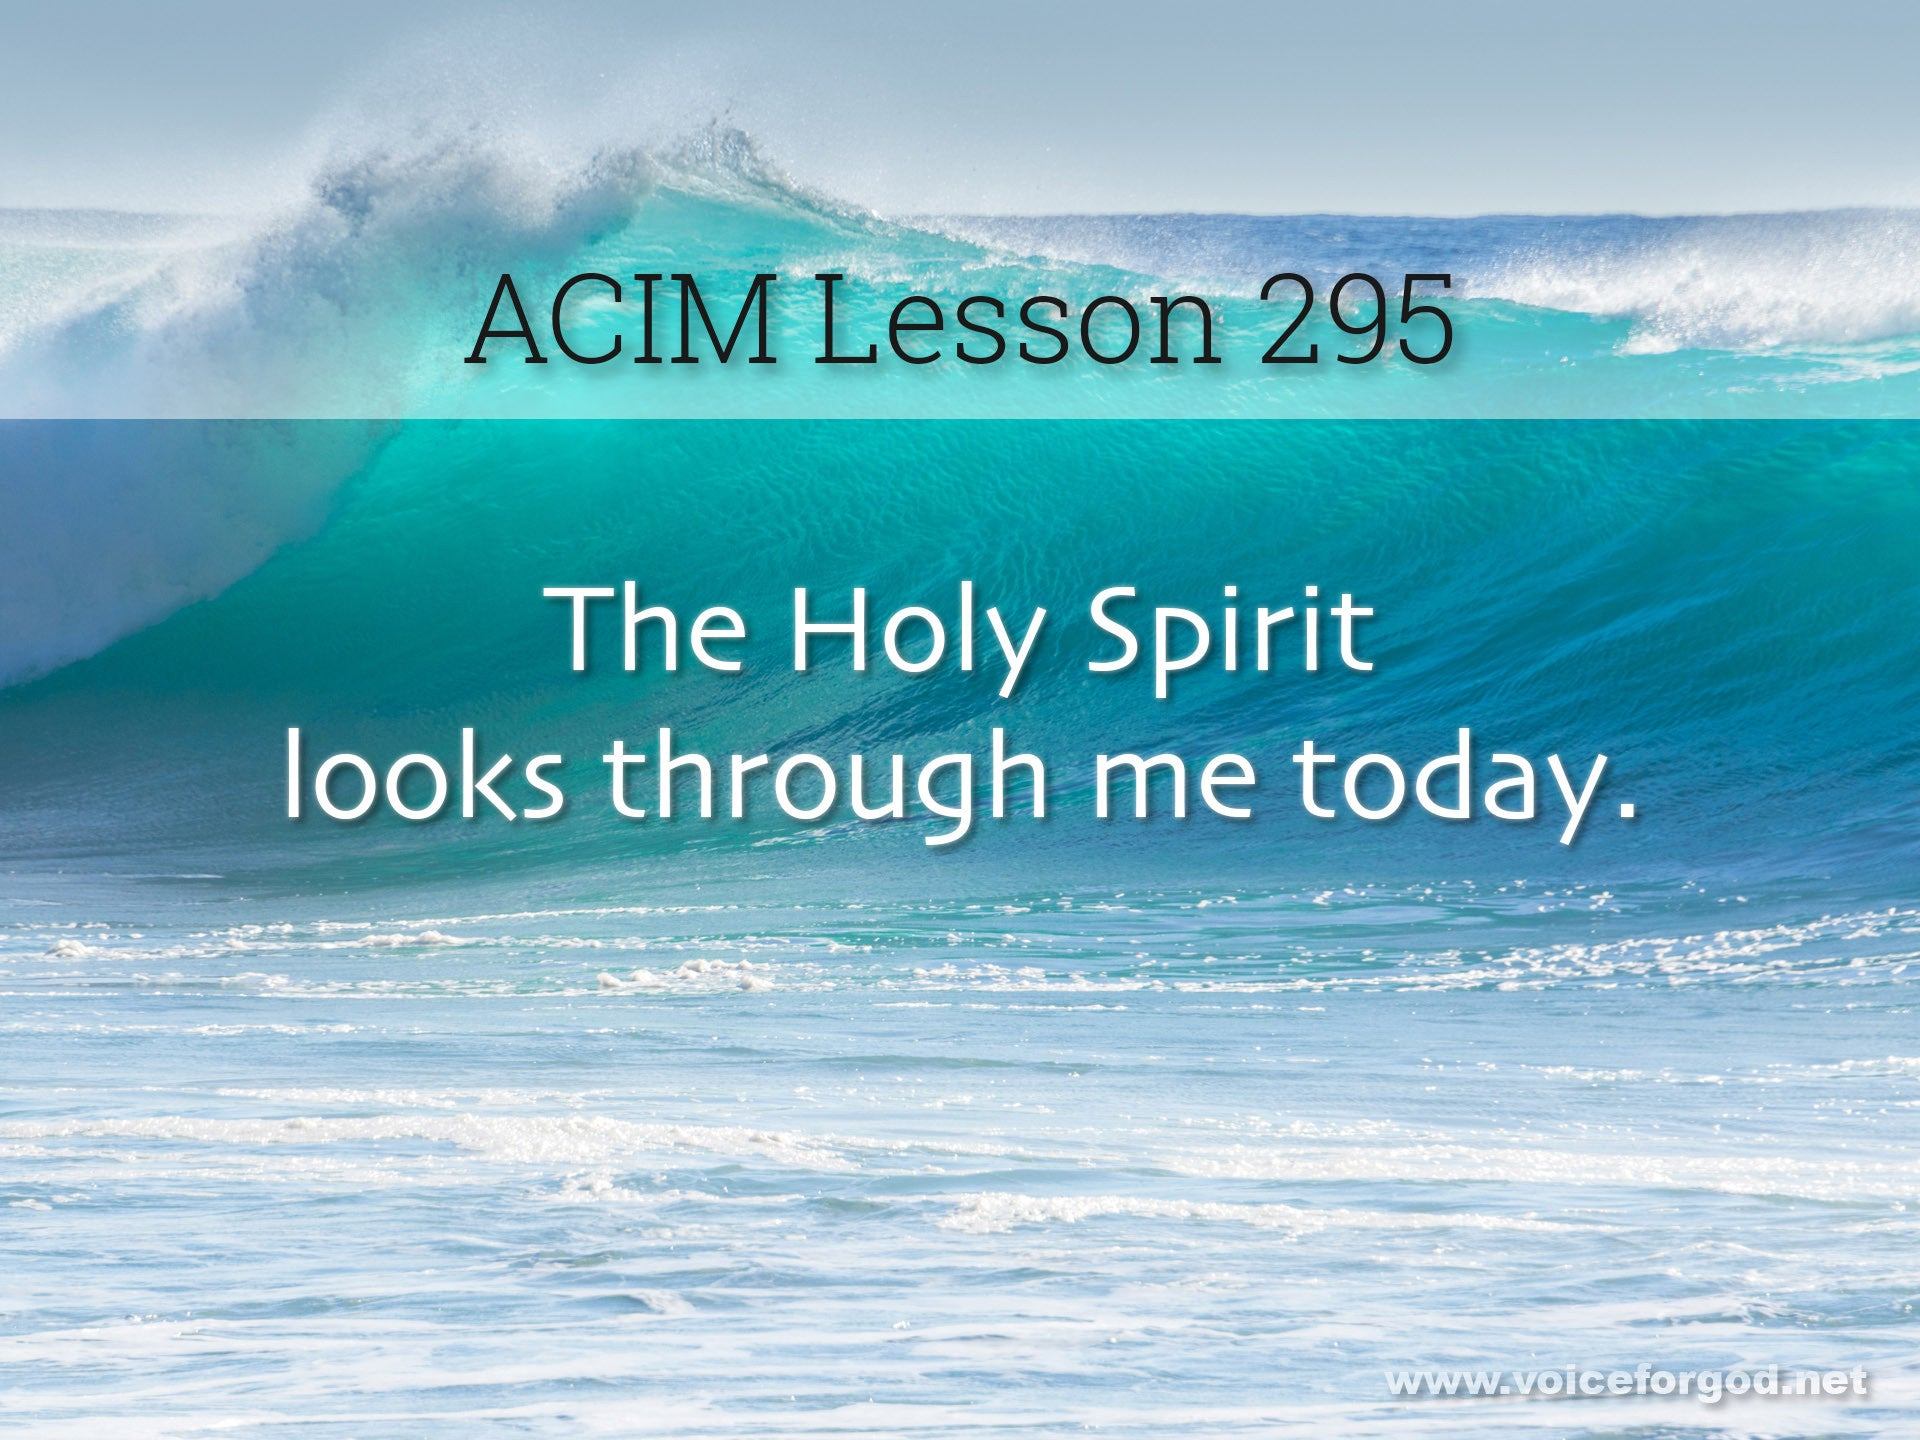 ACIM Lesson 295 - A Course in Miracles Workbook Lesson 295